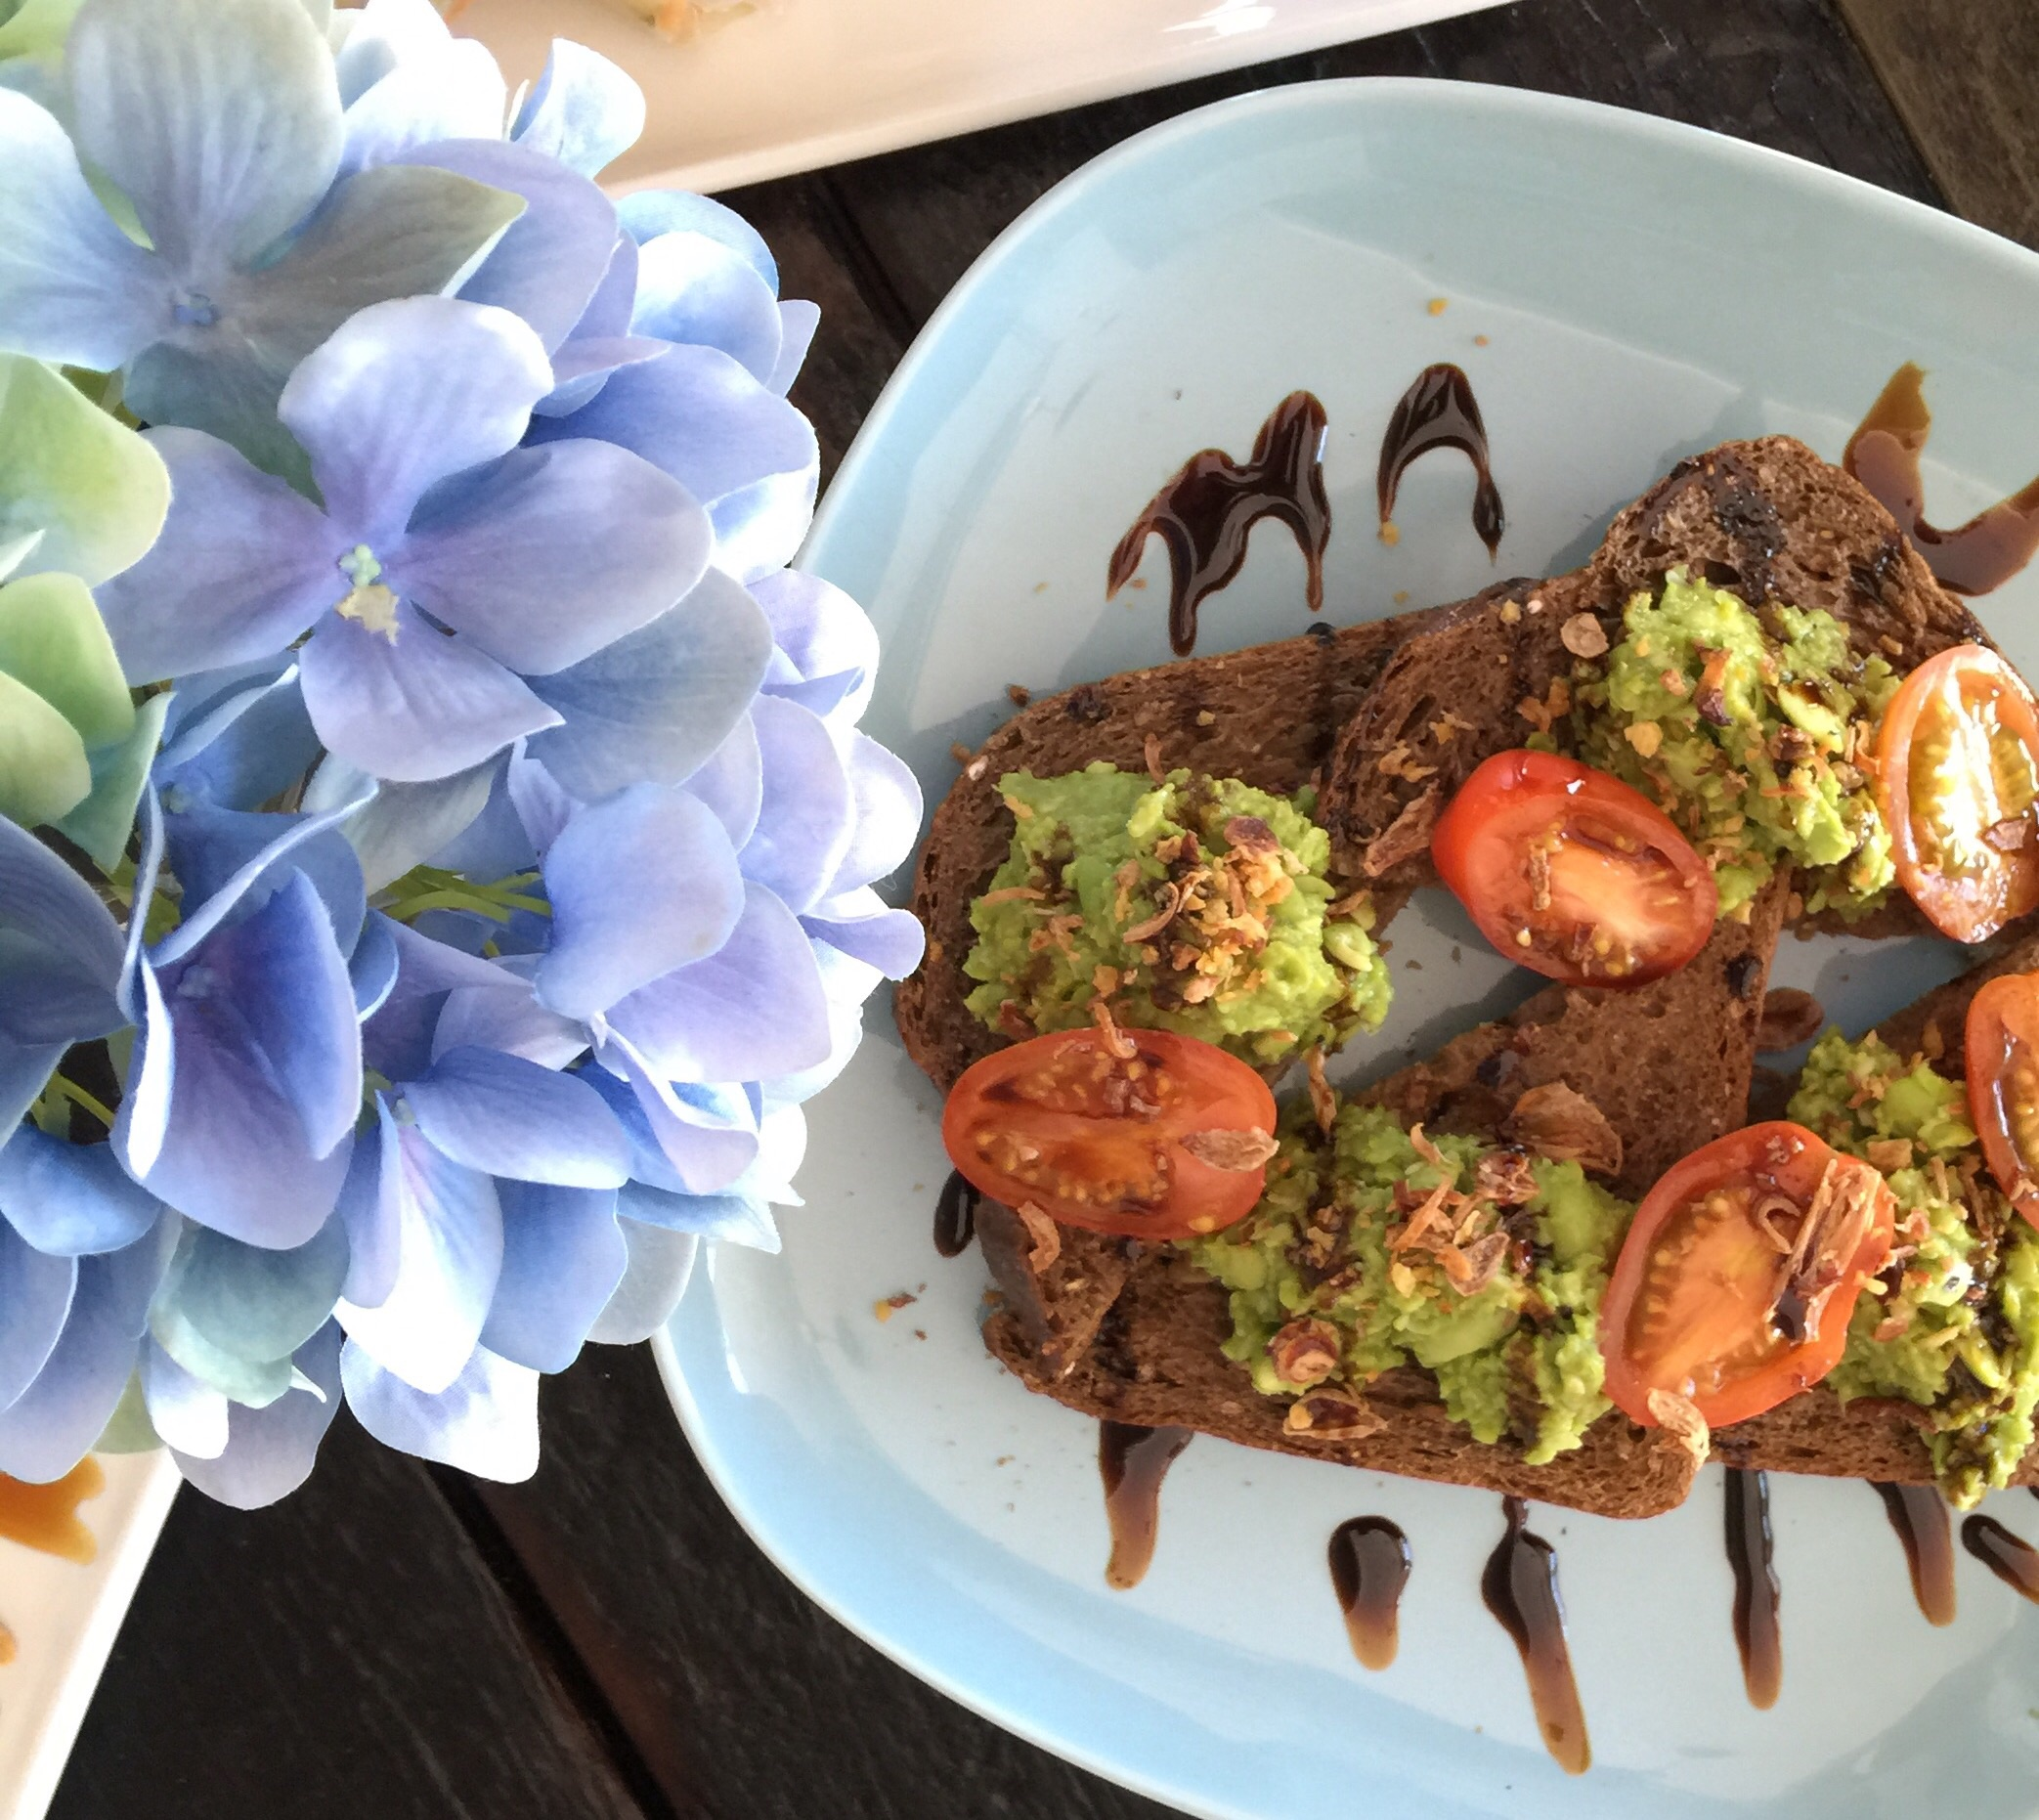 Smashed peas on rye - sweet pea, edamame, tomato, fried shallots